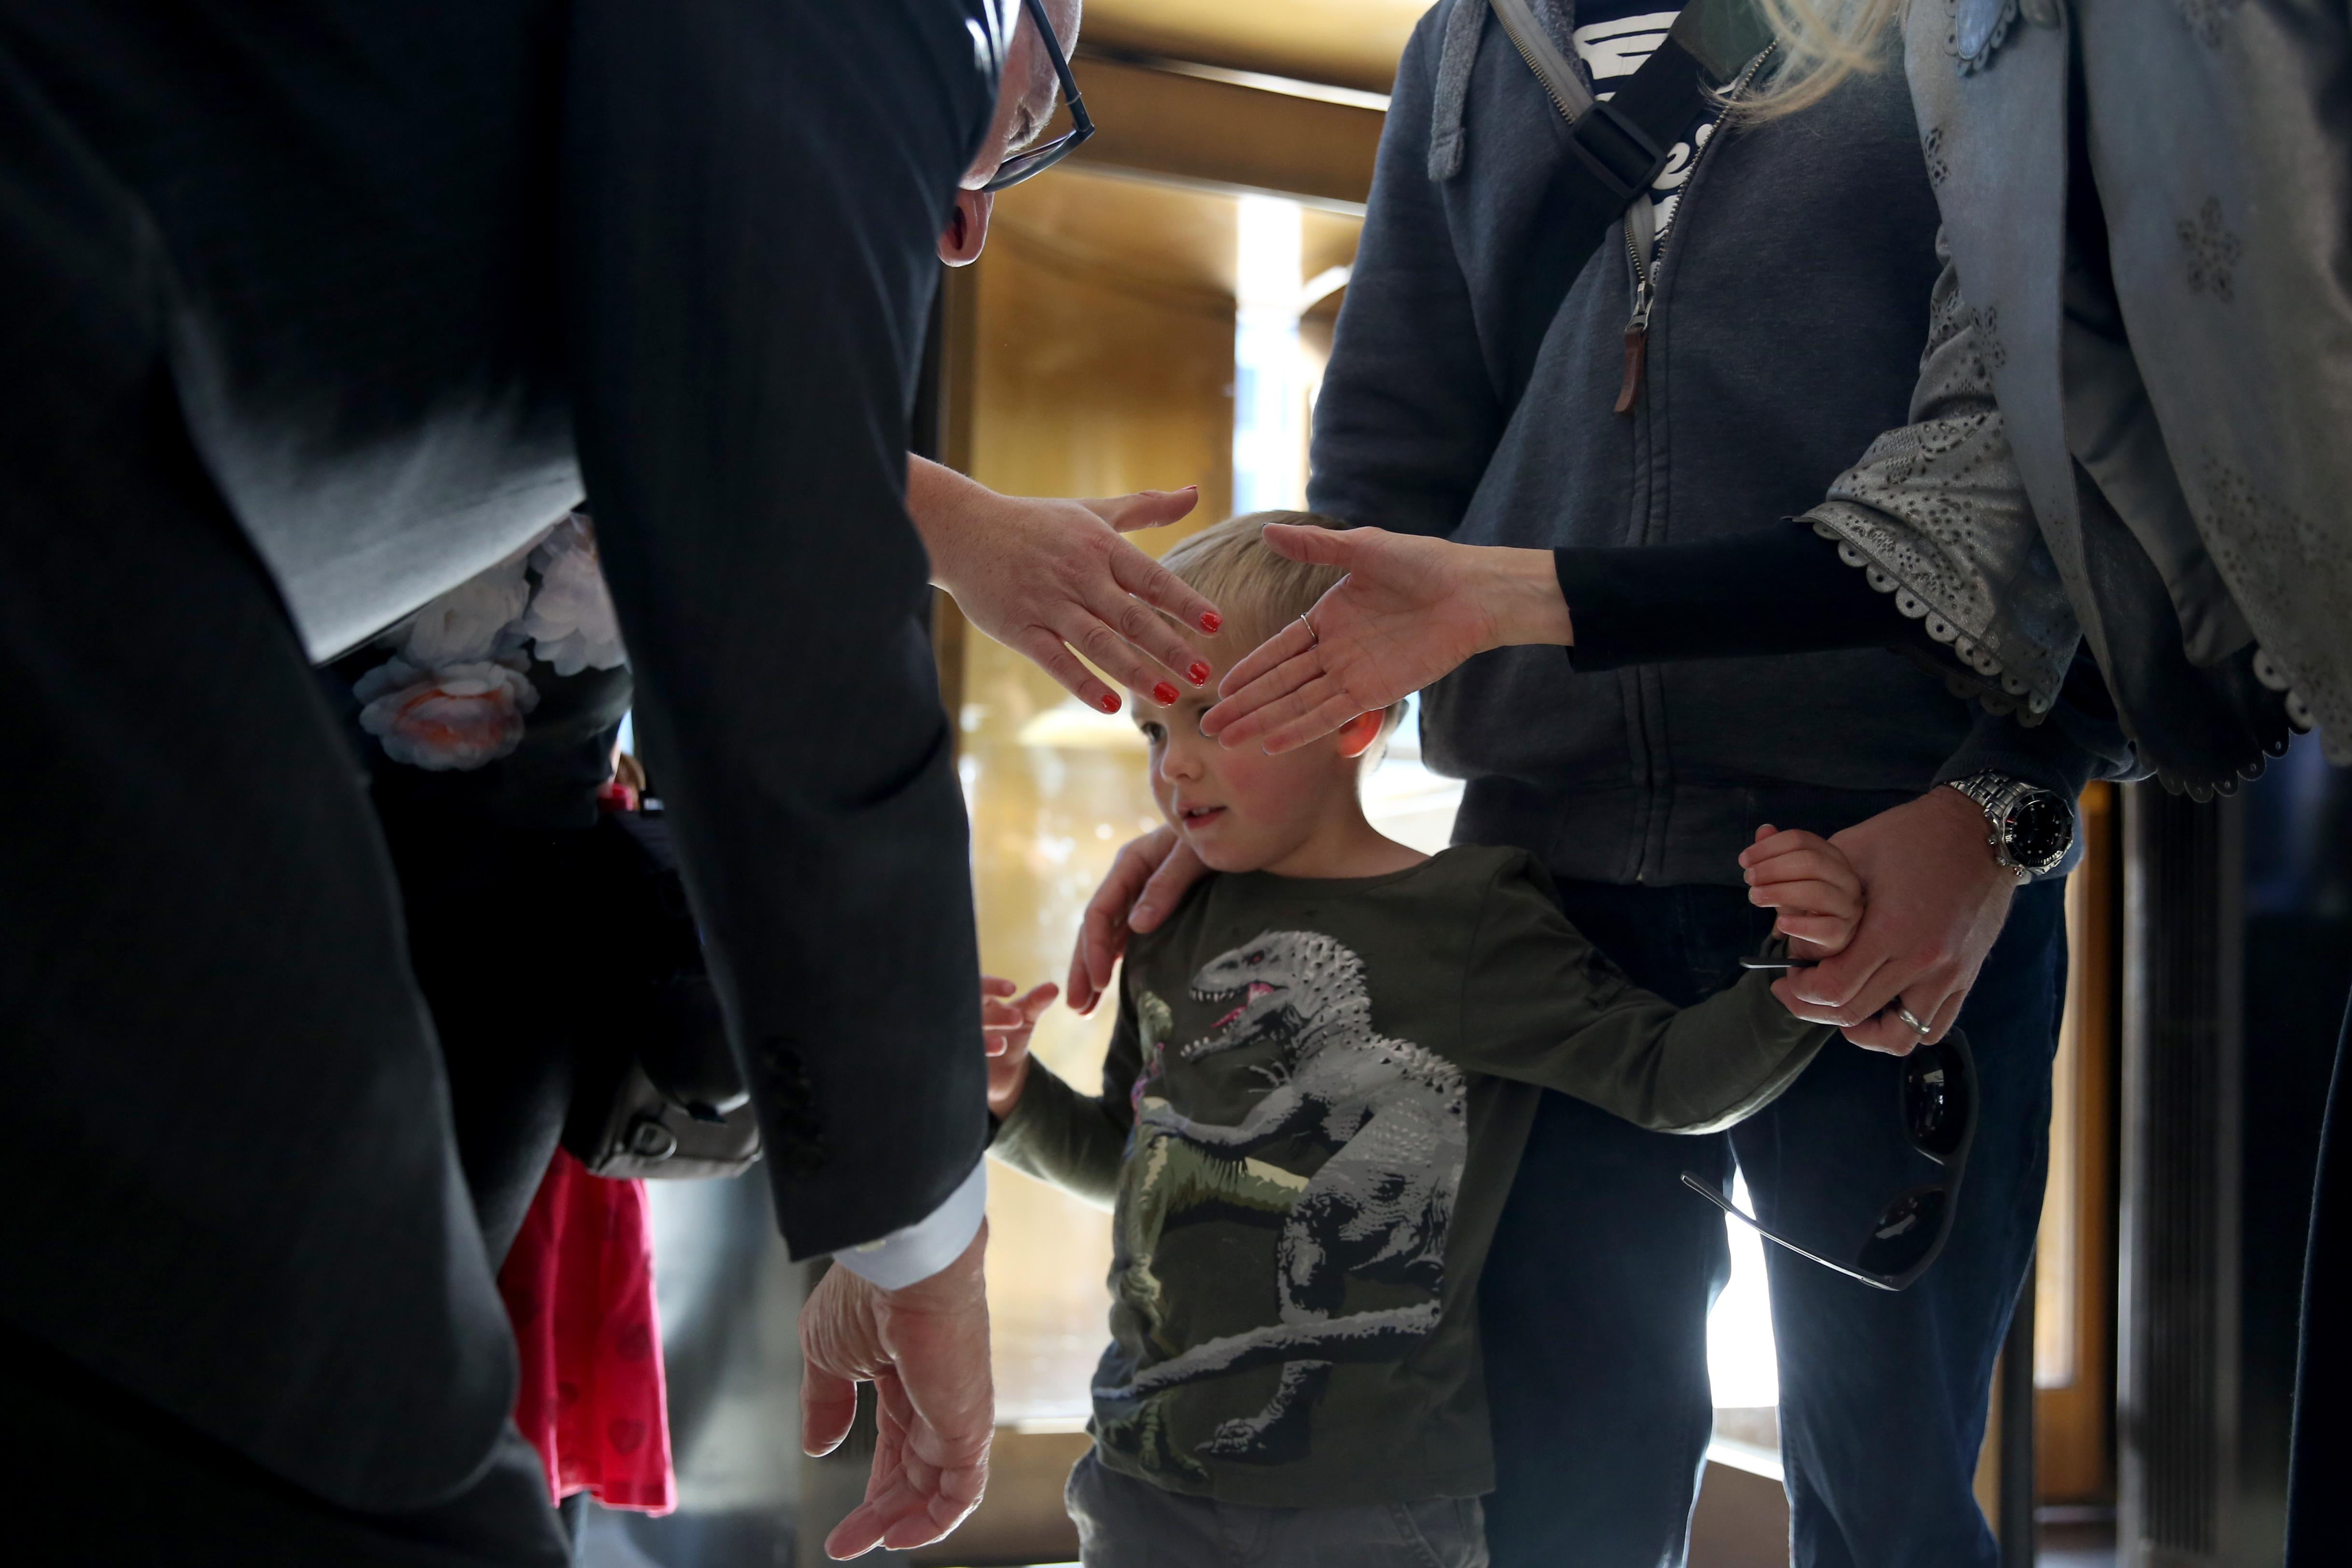 James and Melanie Maughan, along with their children Jacob, 4, and Amelia, 6, were greeted by the secretary of the Smithsonian David Skorton and Melissa Chiu, the director of The Hirshhorn. The family is on a seven week road trip across the United States and they reside in London, England. (Amanda Andrade-Rhoades/DC Refined)